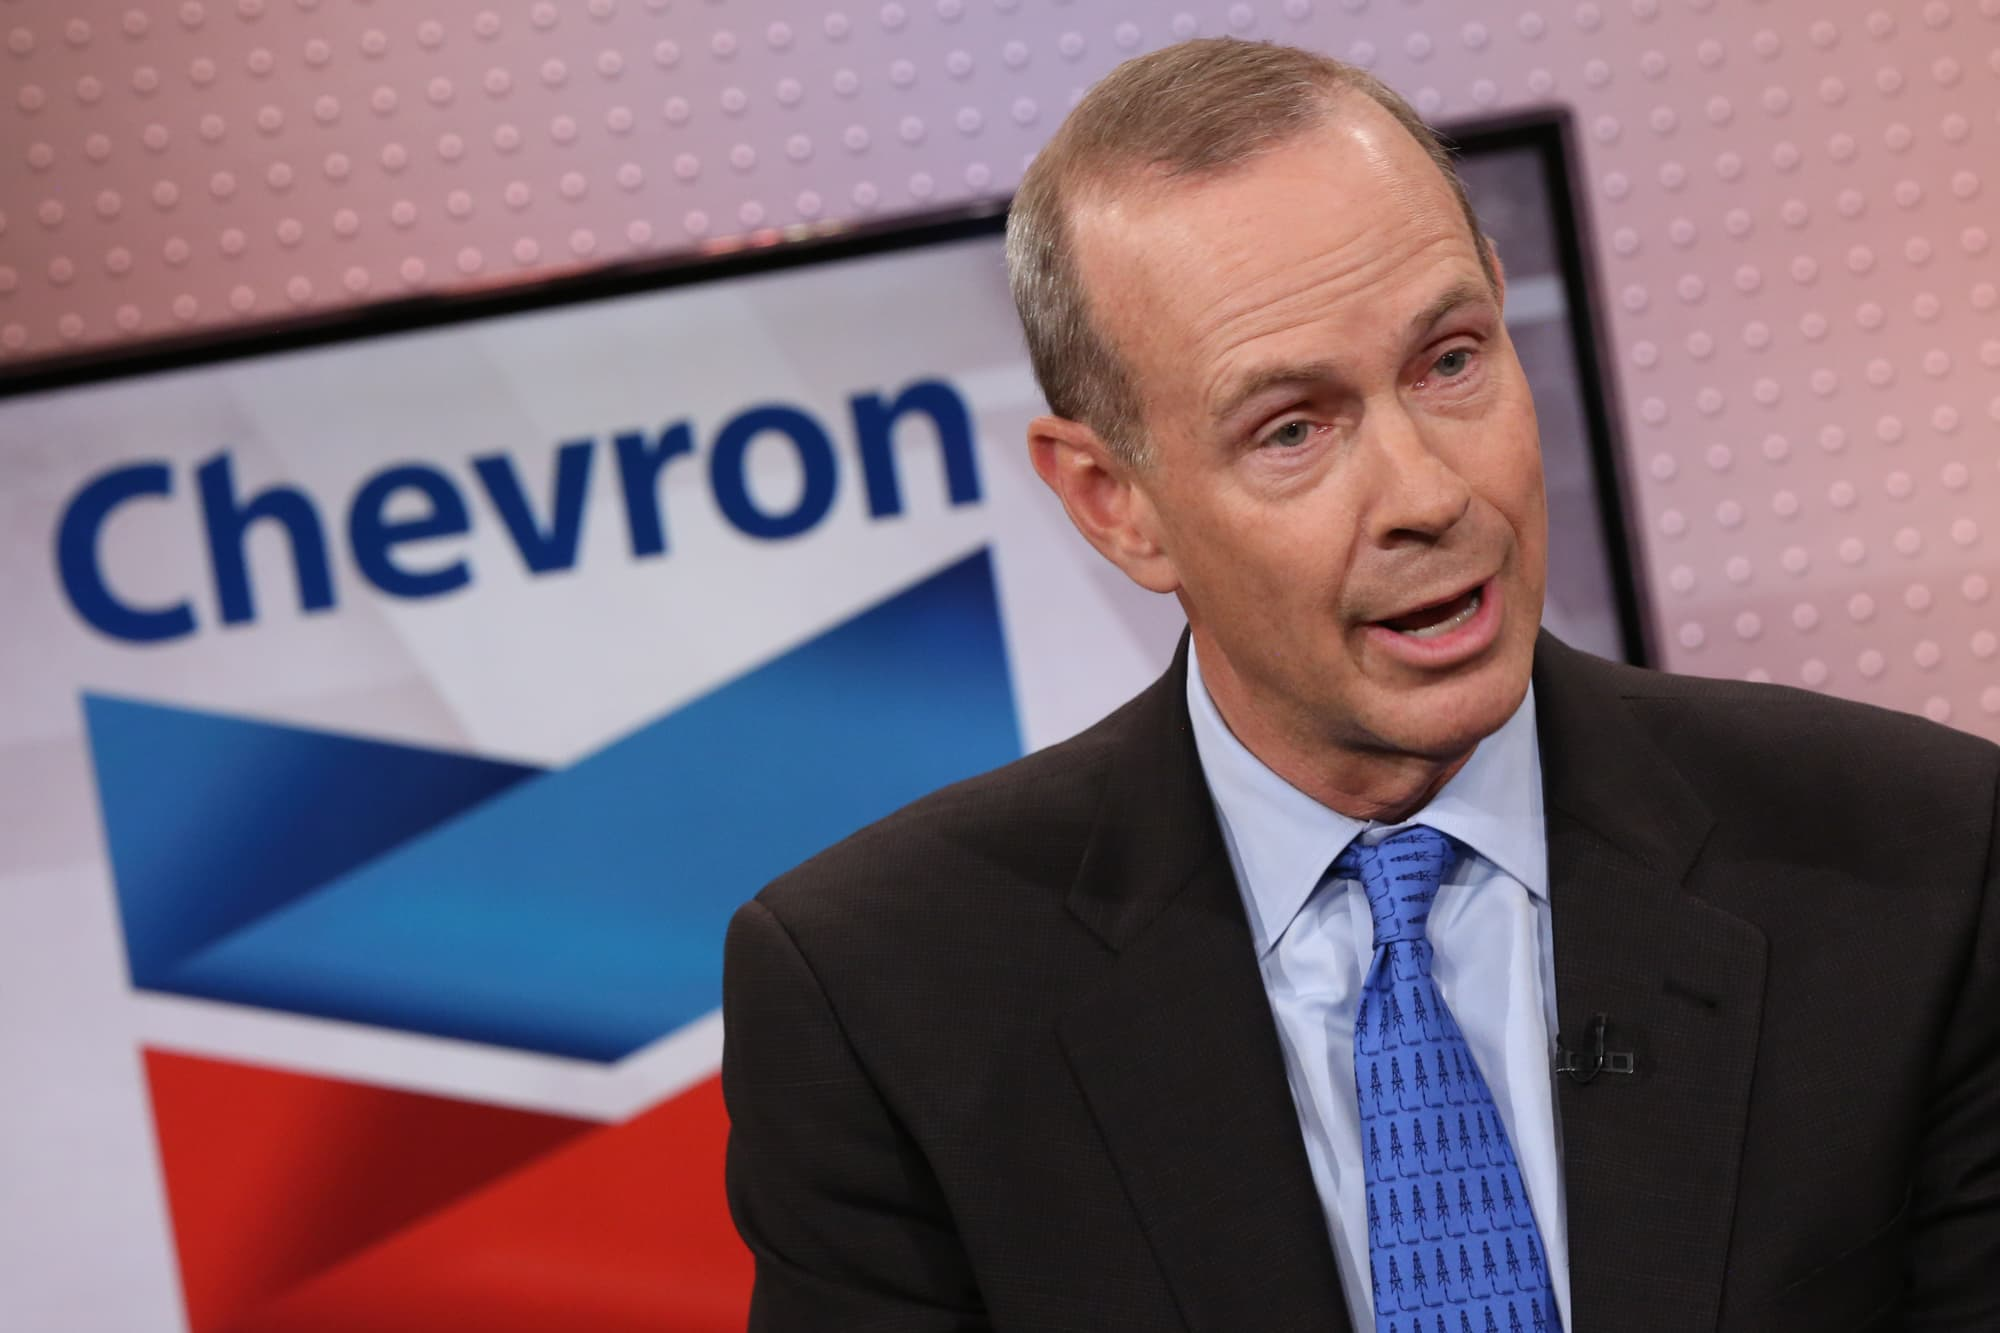 Chevron may have to sweeten offer for Anadarko after rival Occidental bid